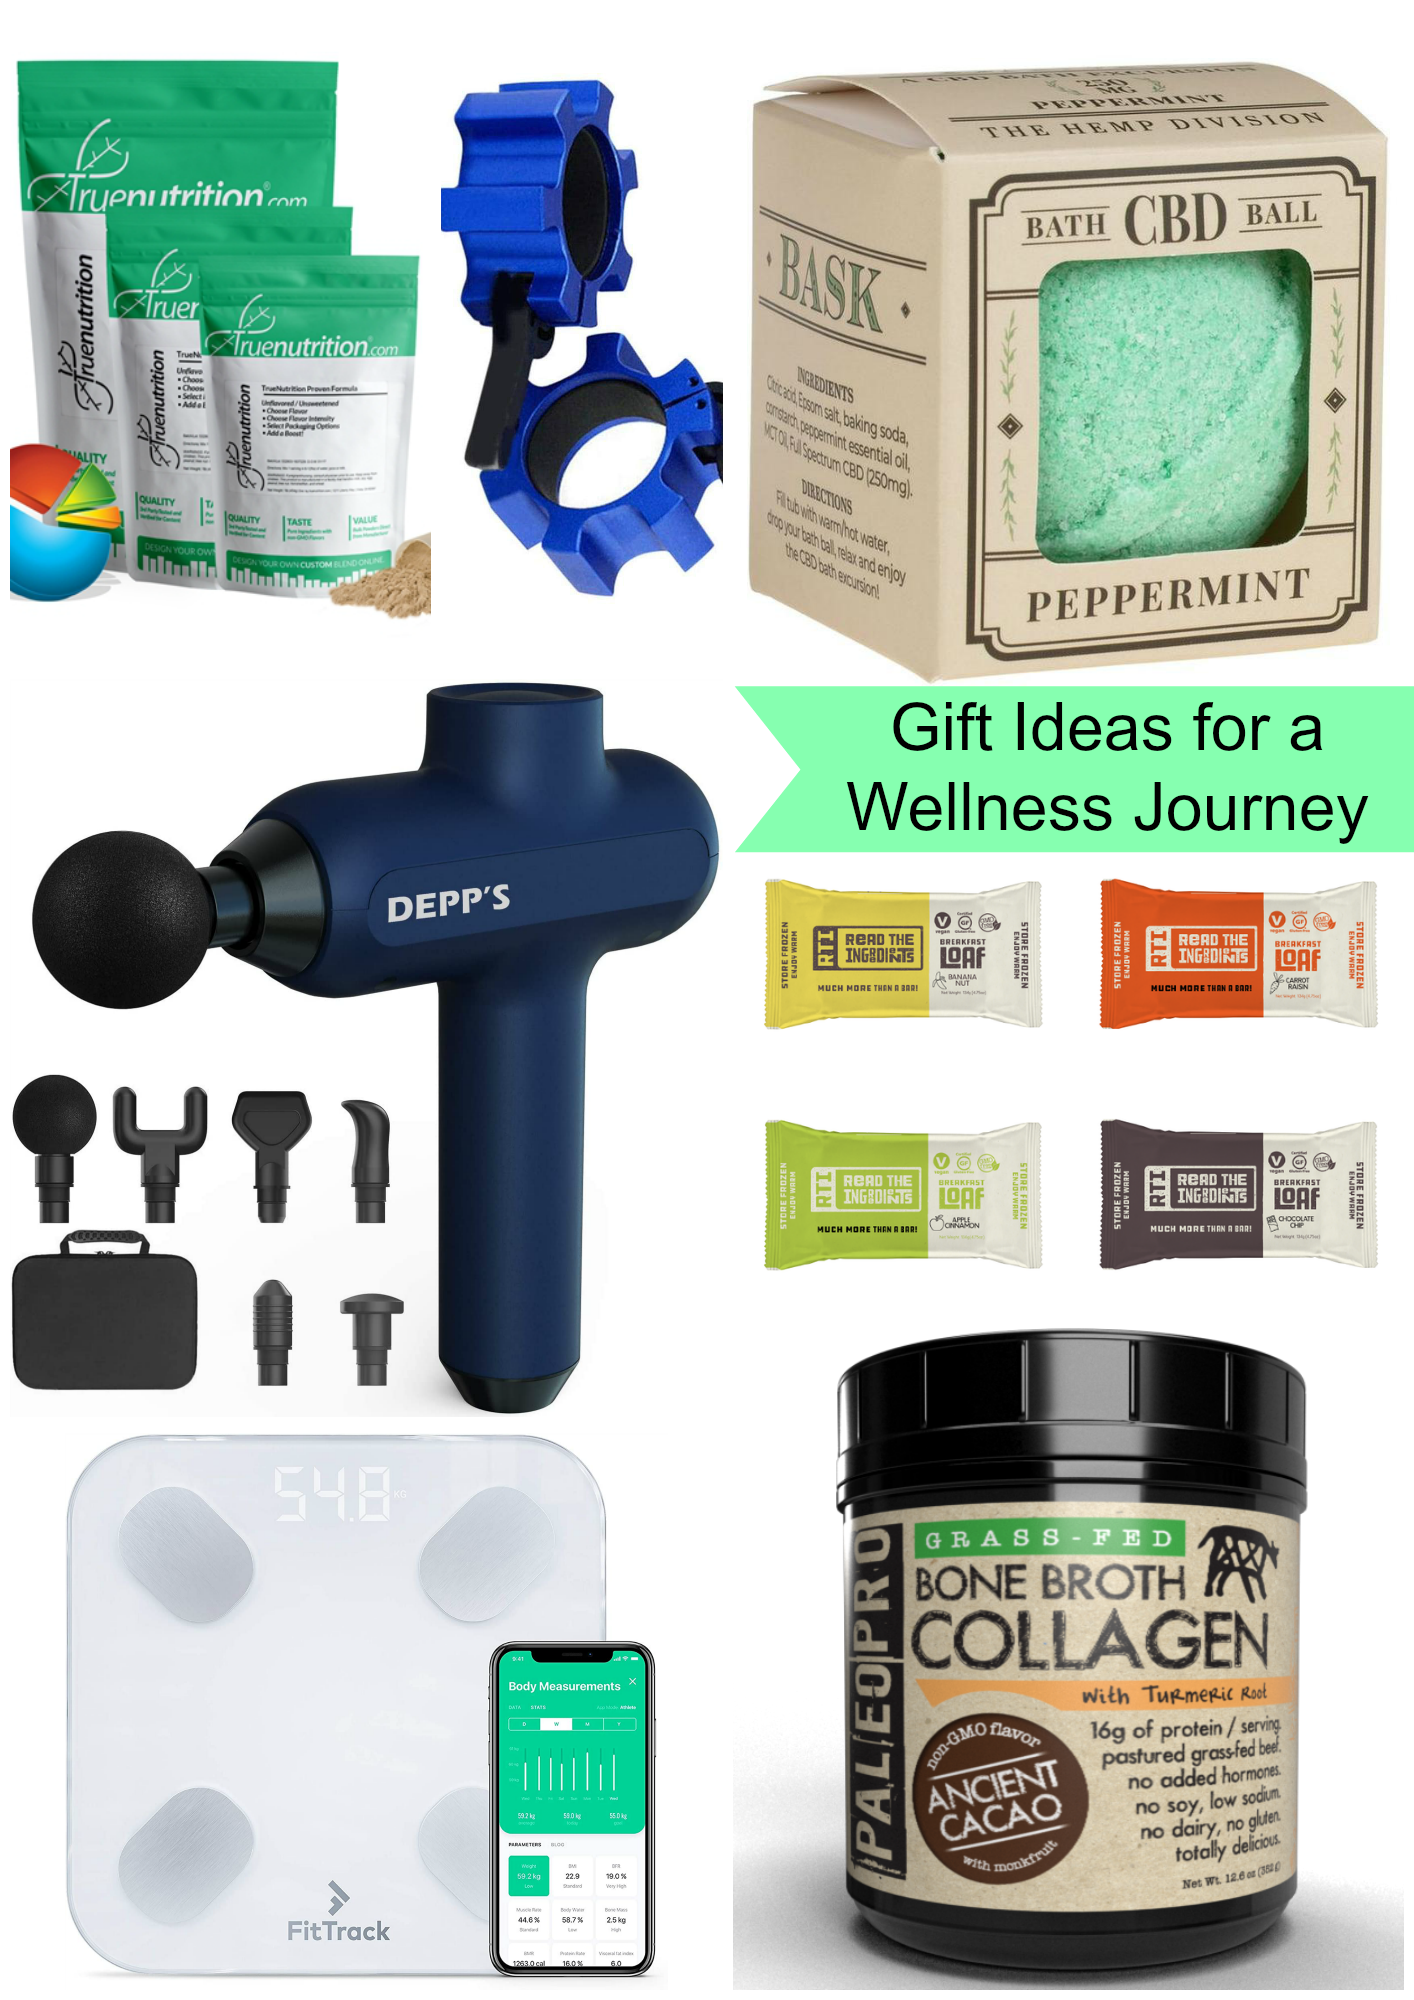 gift ideas for a wellness journey